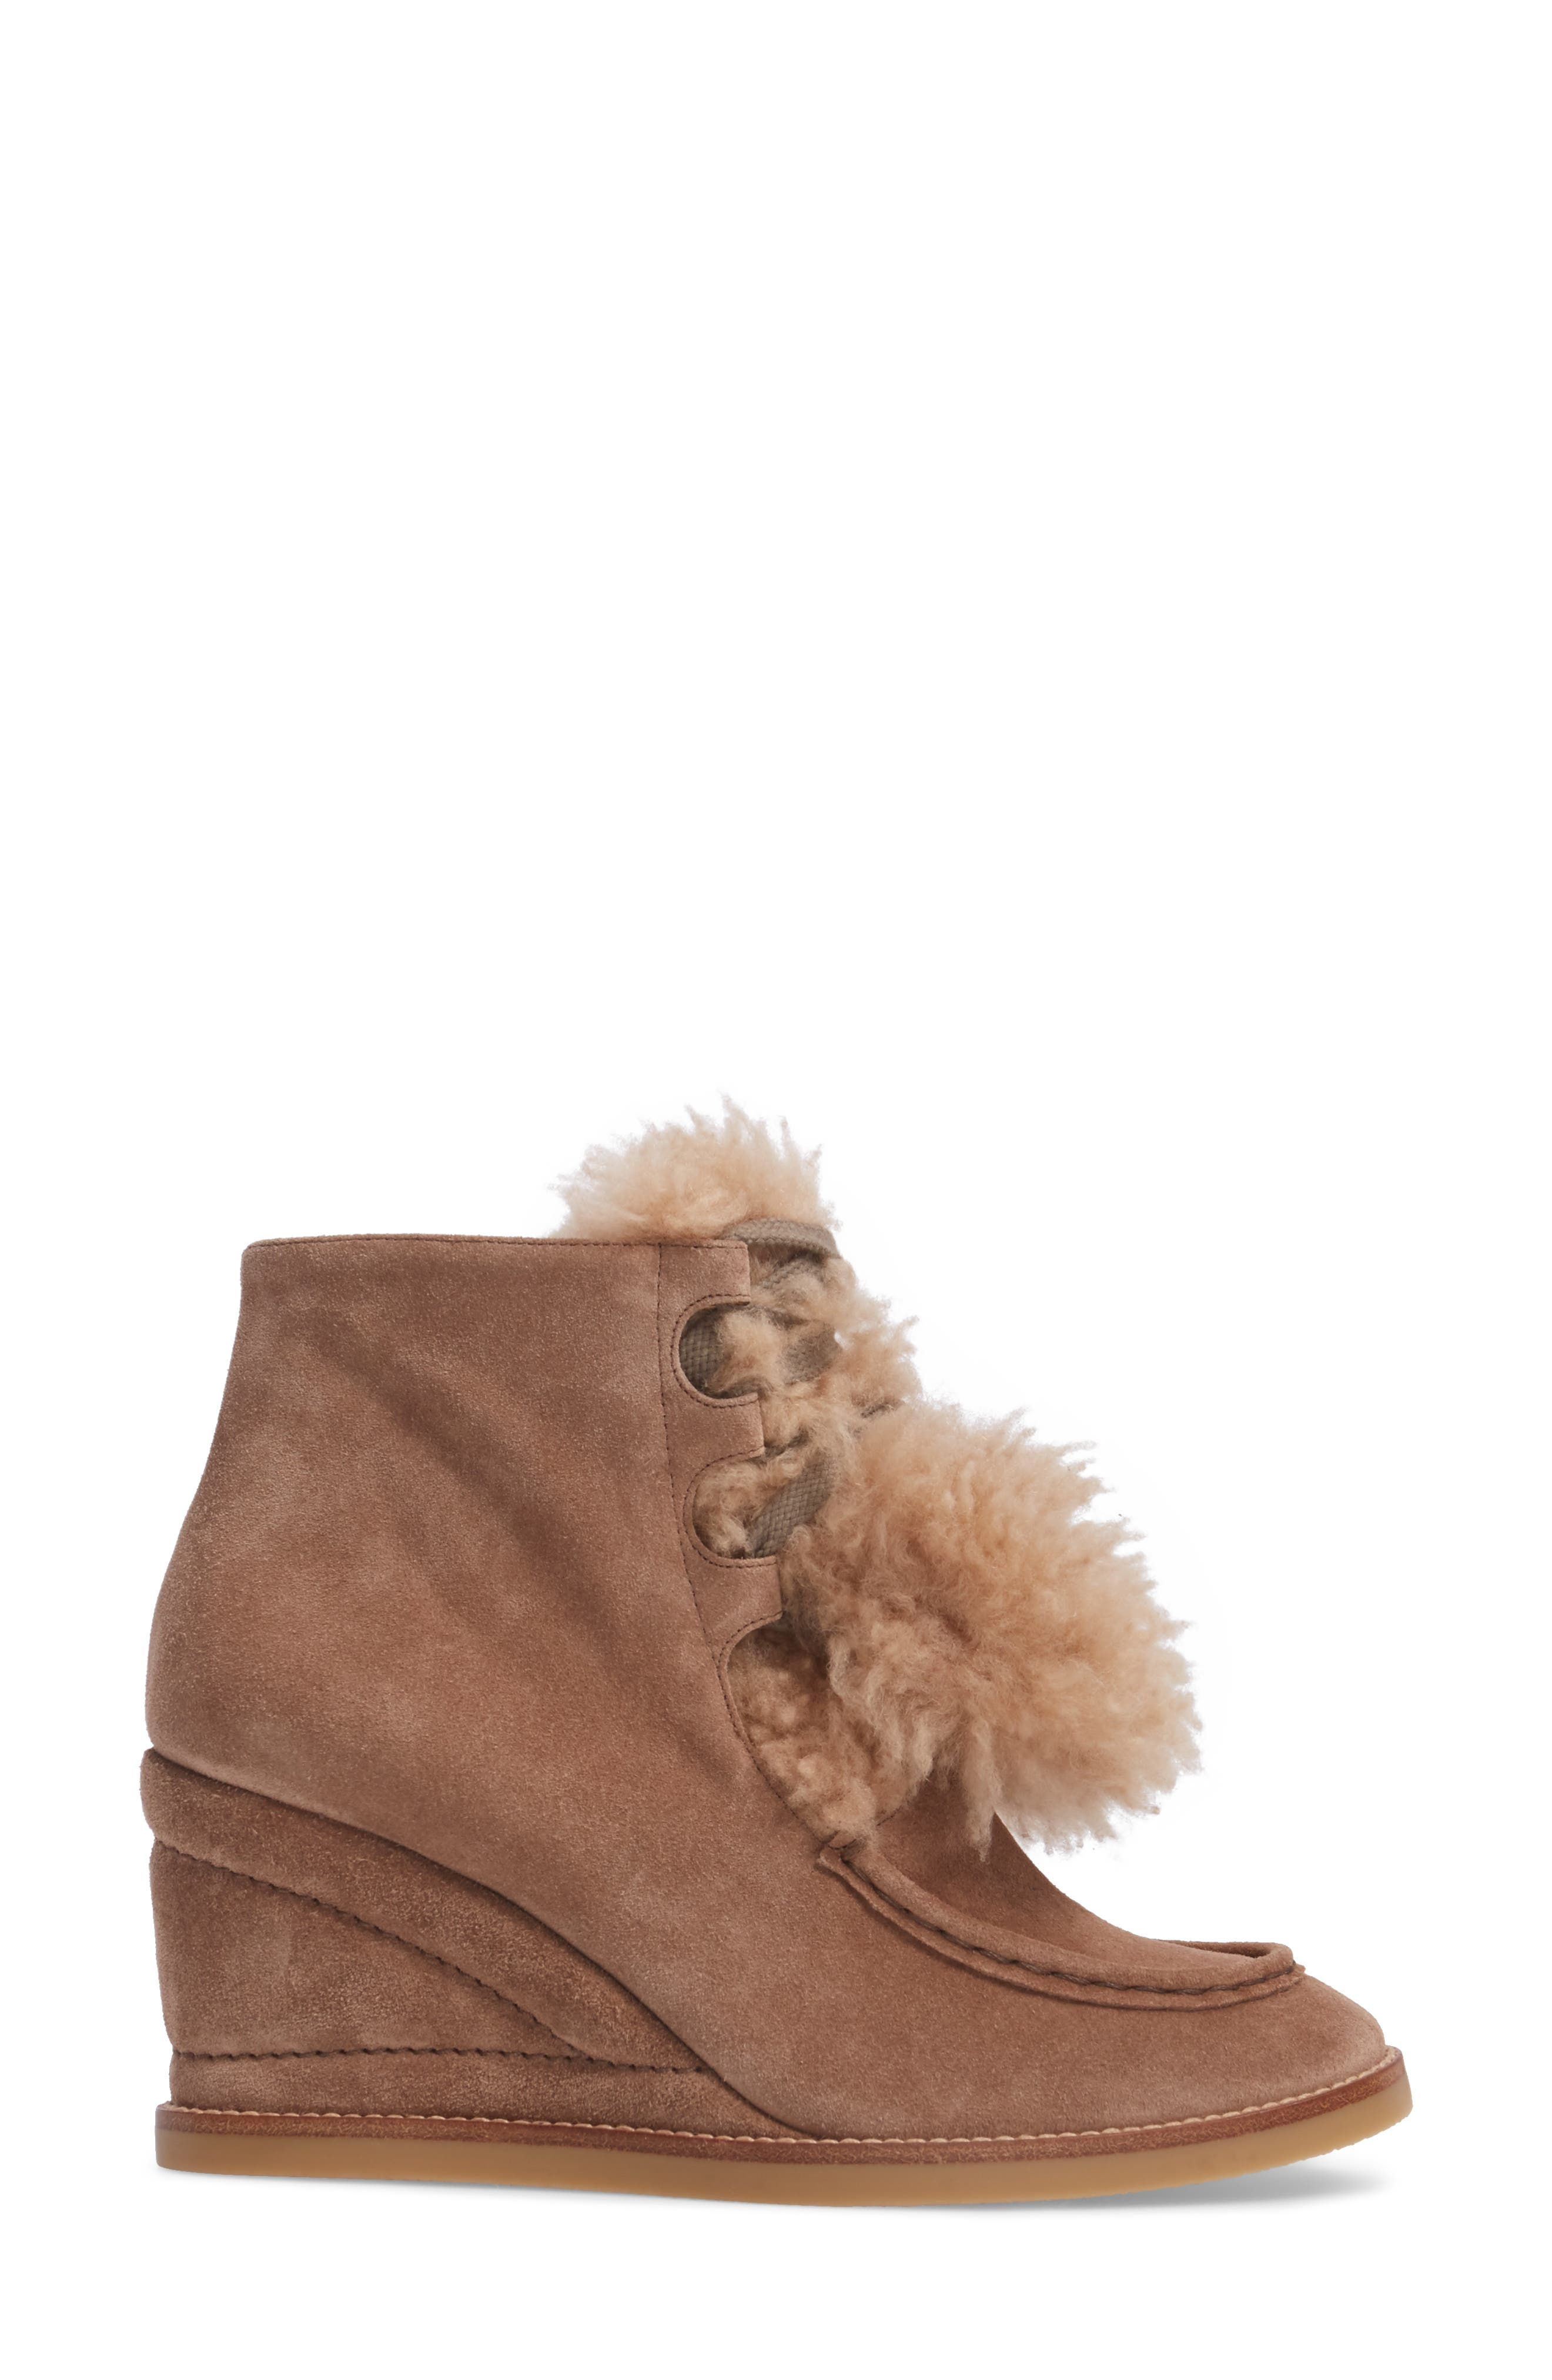 Peggy Genuine Shearling Wedge Bootie,                             Alternate thumbnail 3, color,                             Latte Brown Suede